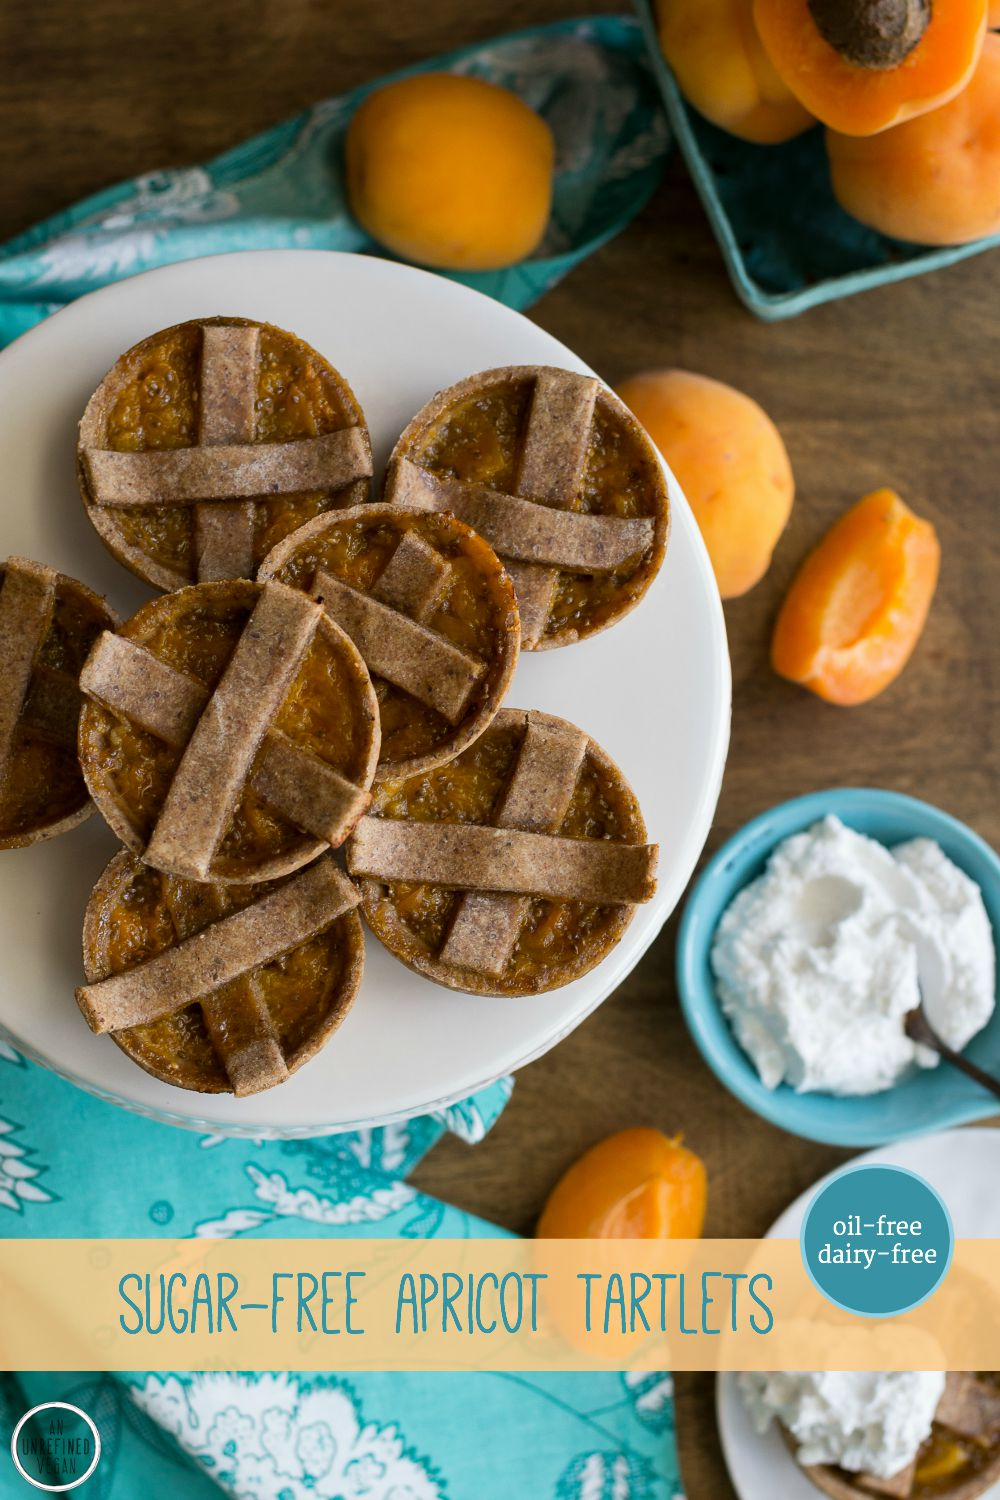 Apricot Tartlets by An Unrefined Vegan